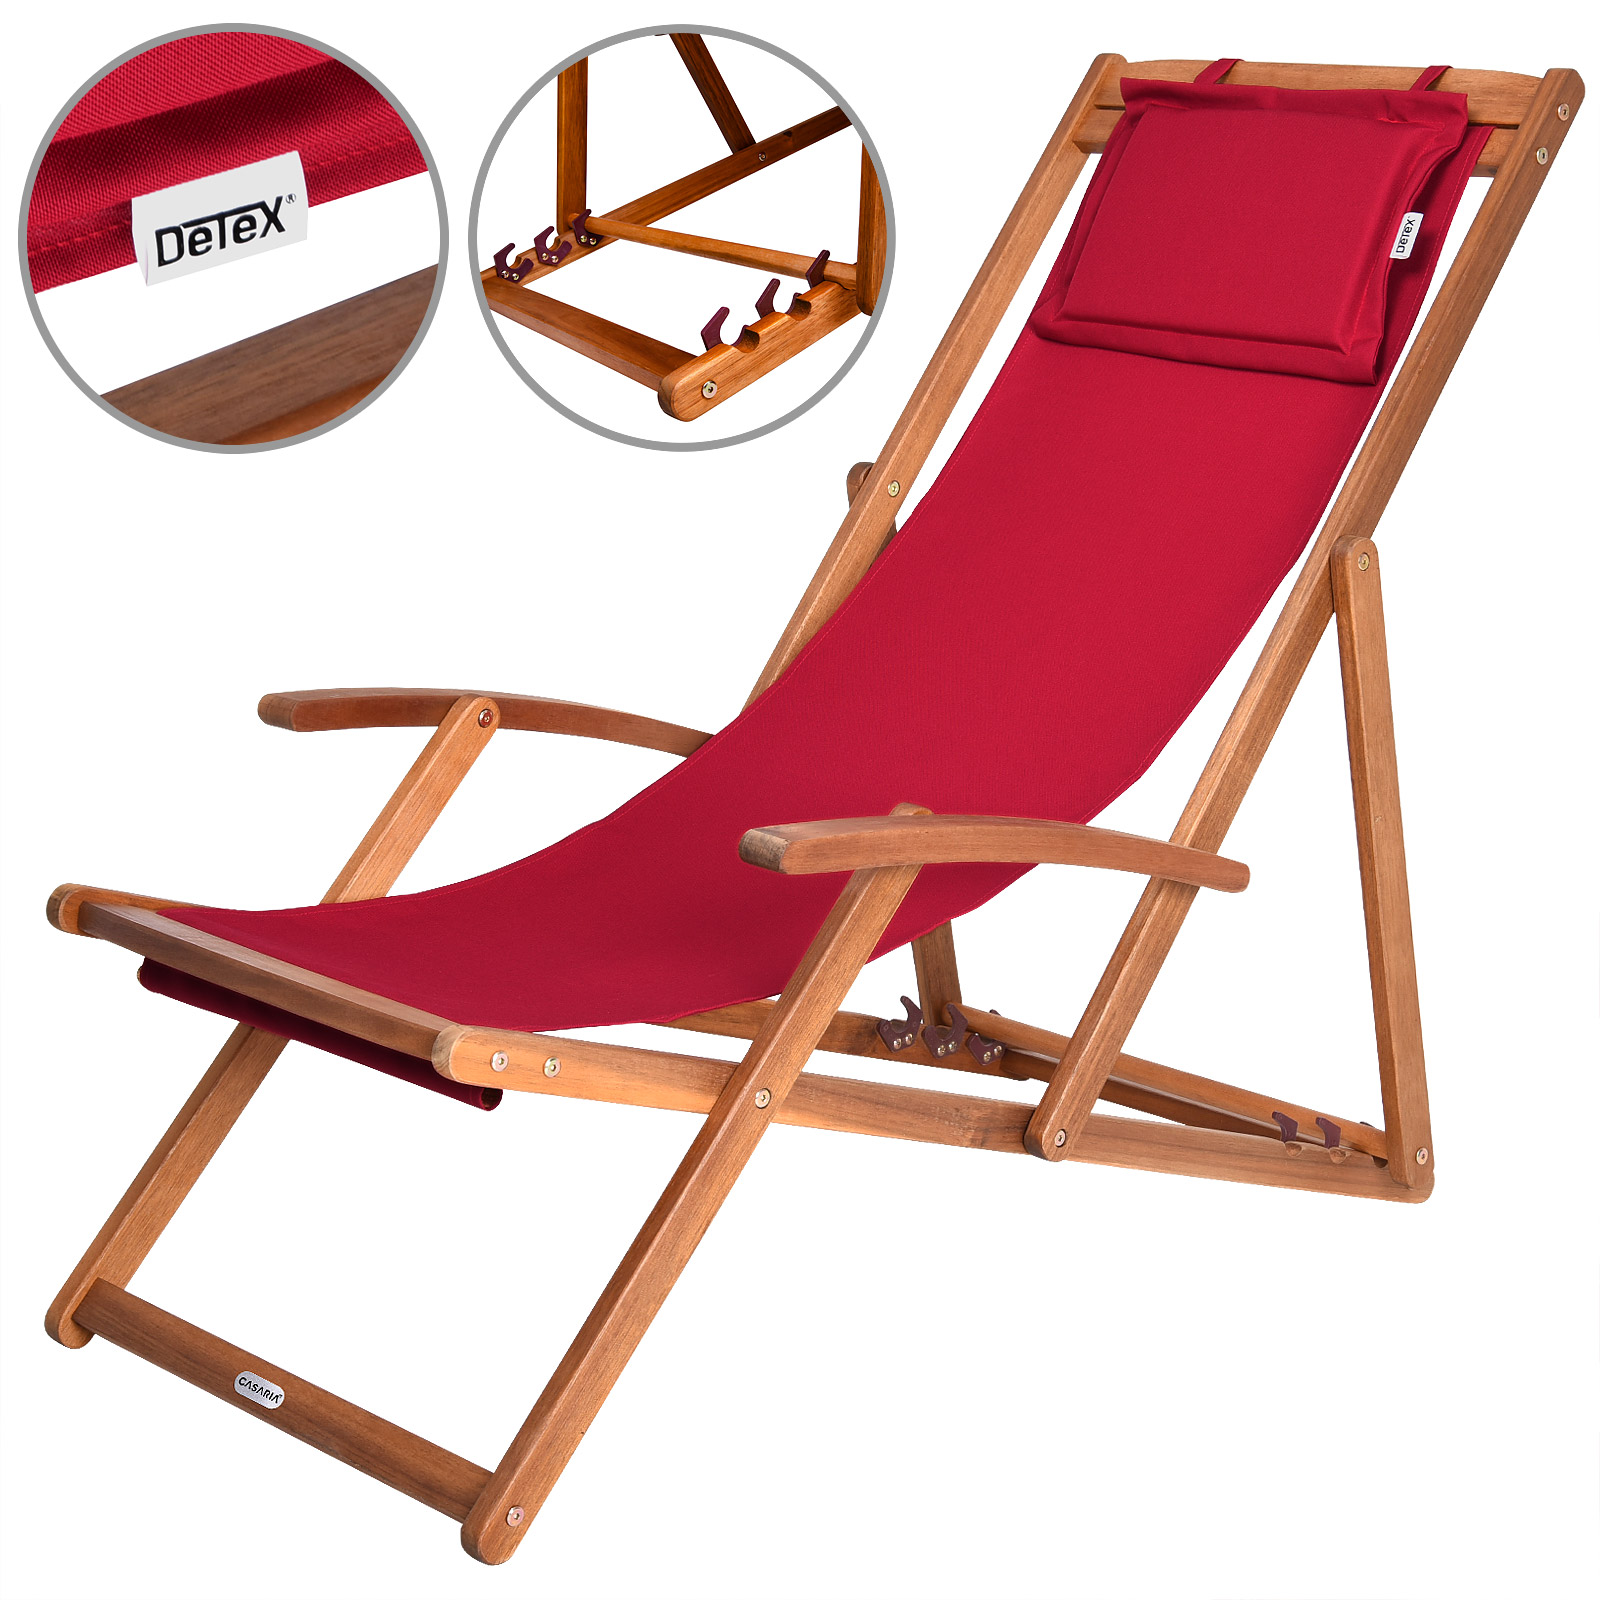 Wooden Folding Deck Chairs Garden Deckchair Furniture Hardwood Chair Cushion Red